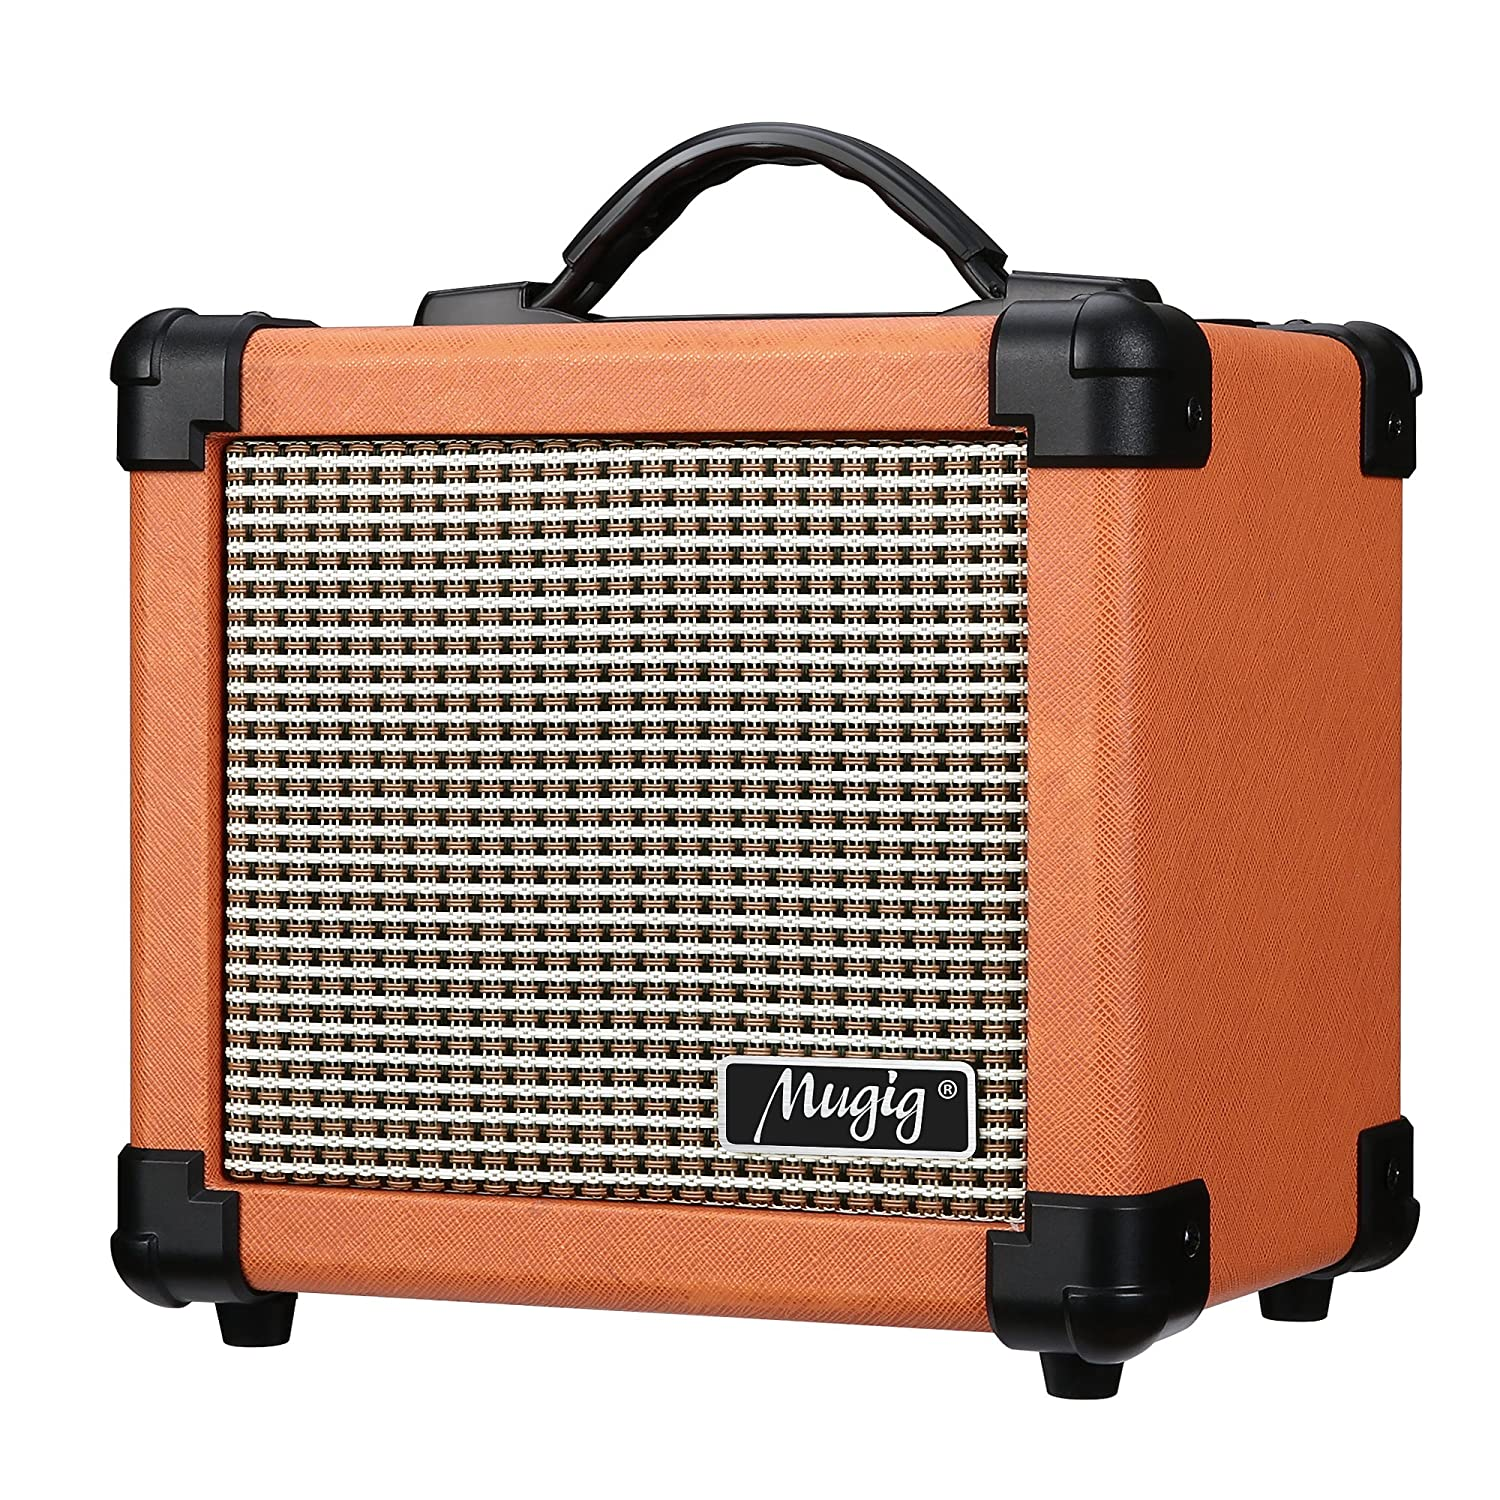 5. Mugig Guitar Amplifier 10W